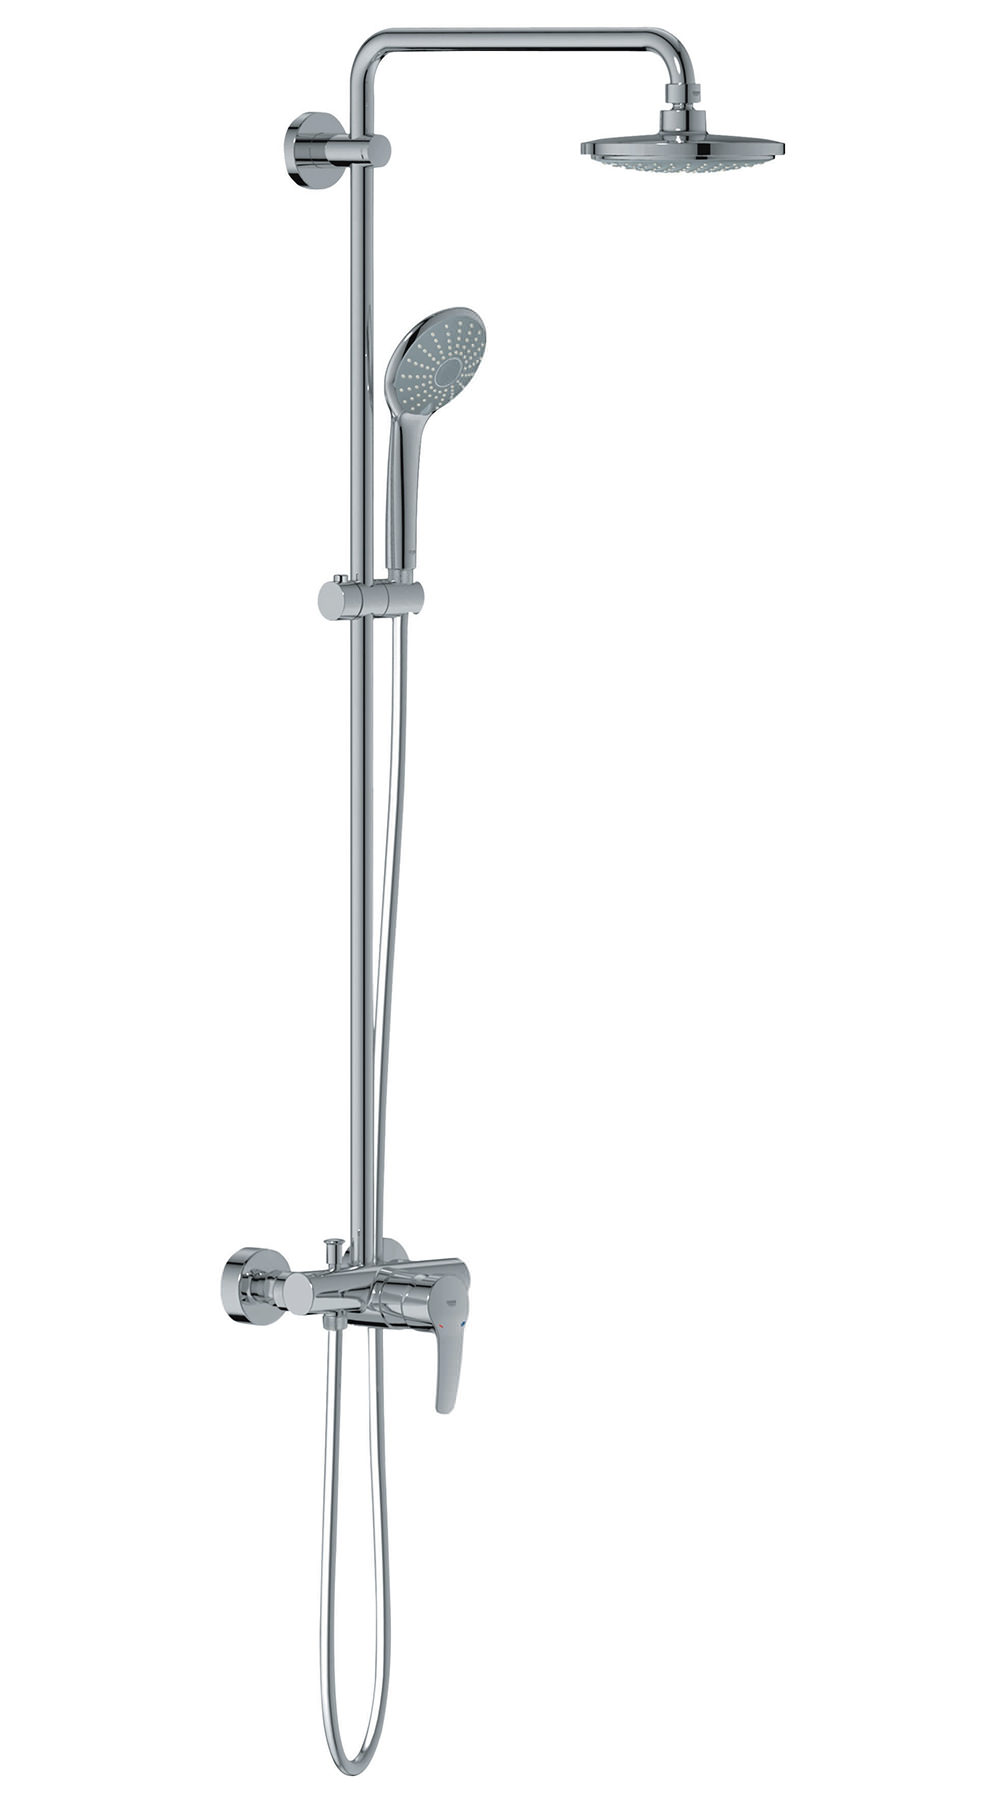 grohe euphoria system 180 shower system with 450mm shower arm. Black Bedroom Furniture Sets. Home Design Ideas